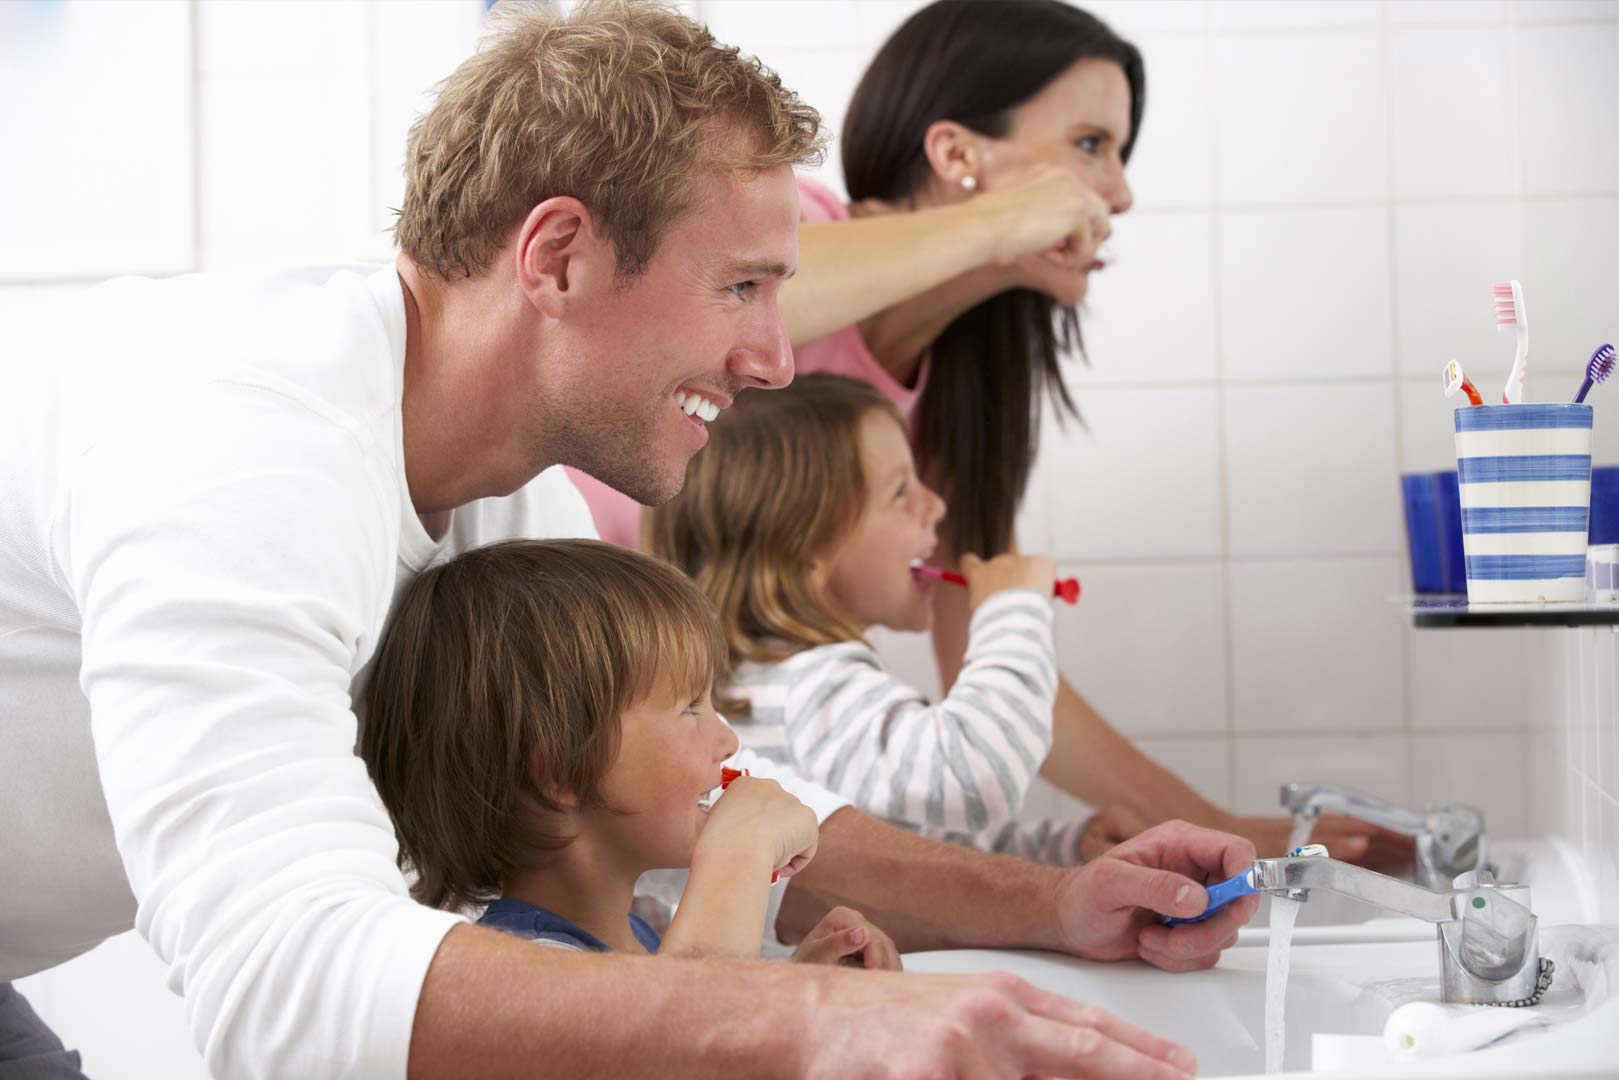 5 Teeth Cleaning Tips For Kids From Dentist Parents